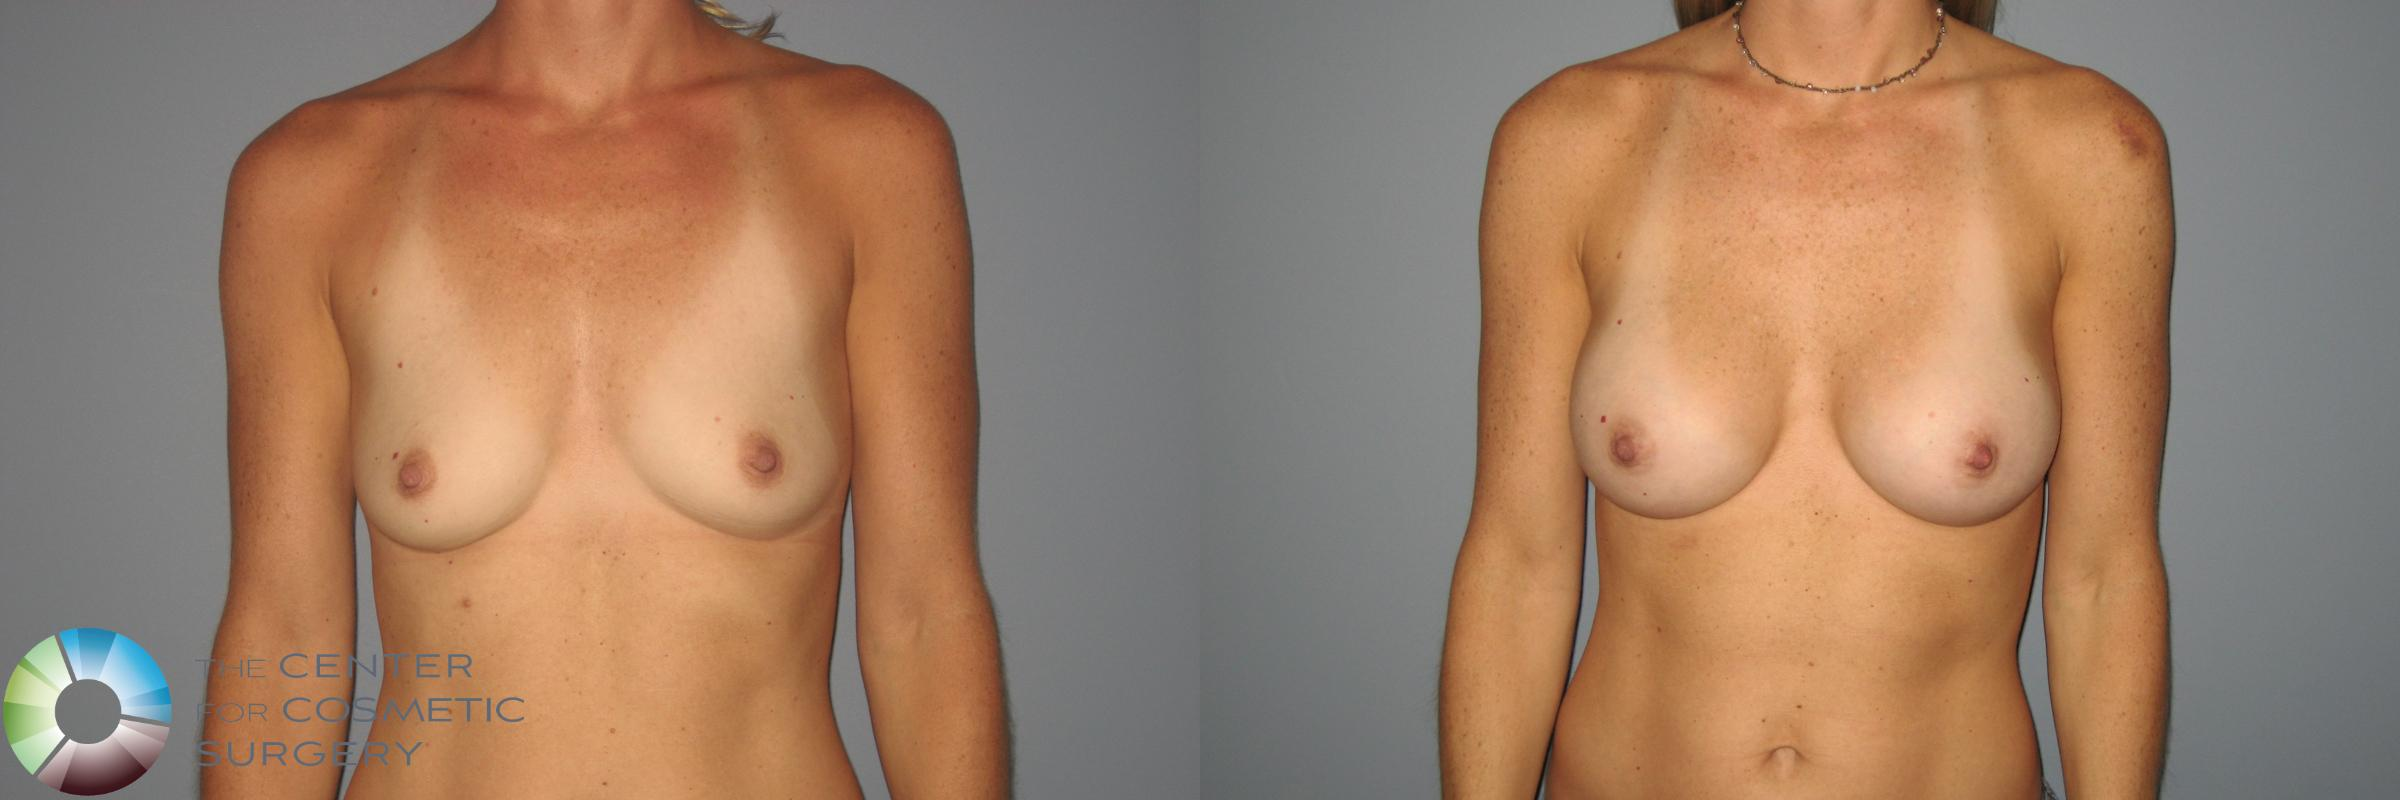 Breast Augmentation Case 871 Before & After View #1 | Golden, CO | The Center for Cosmetic Surgery